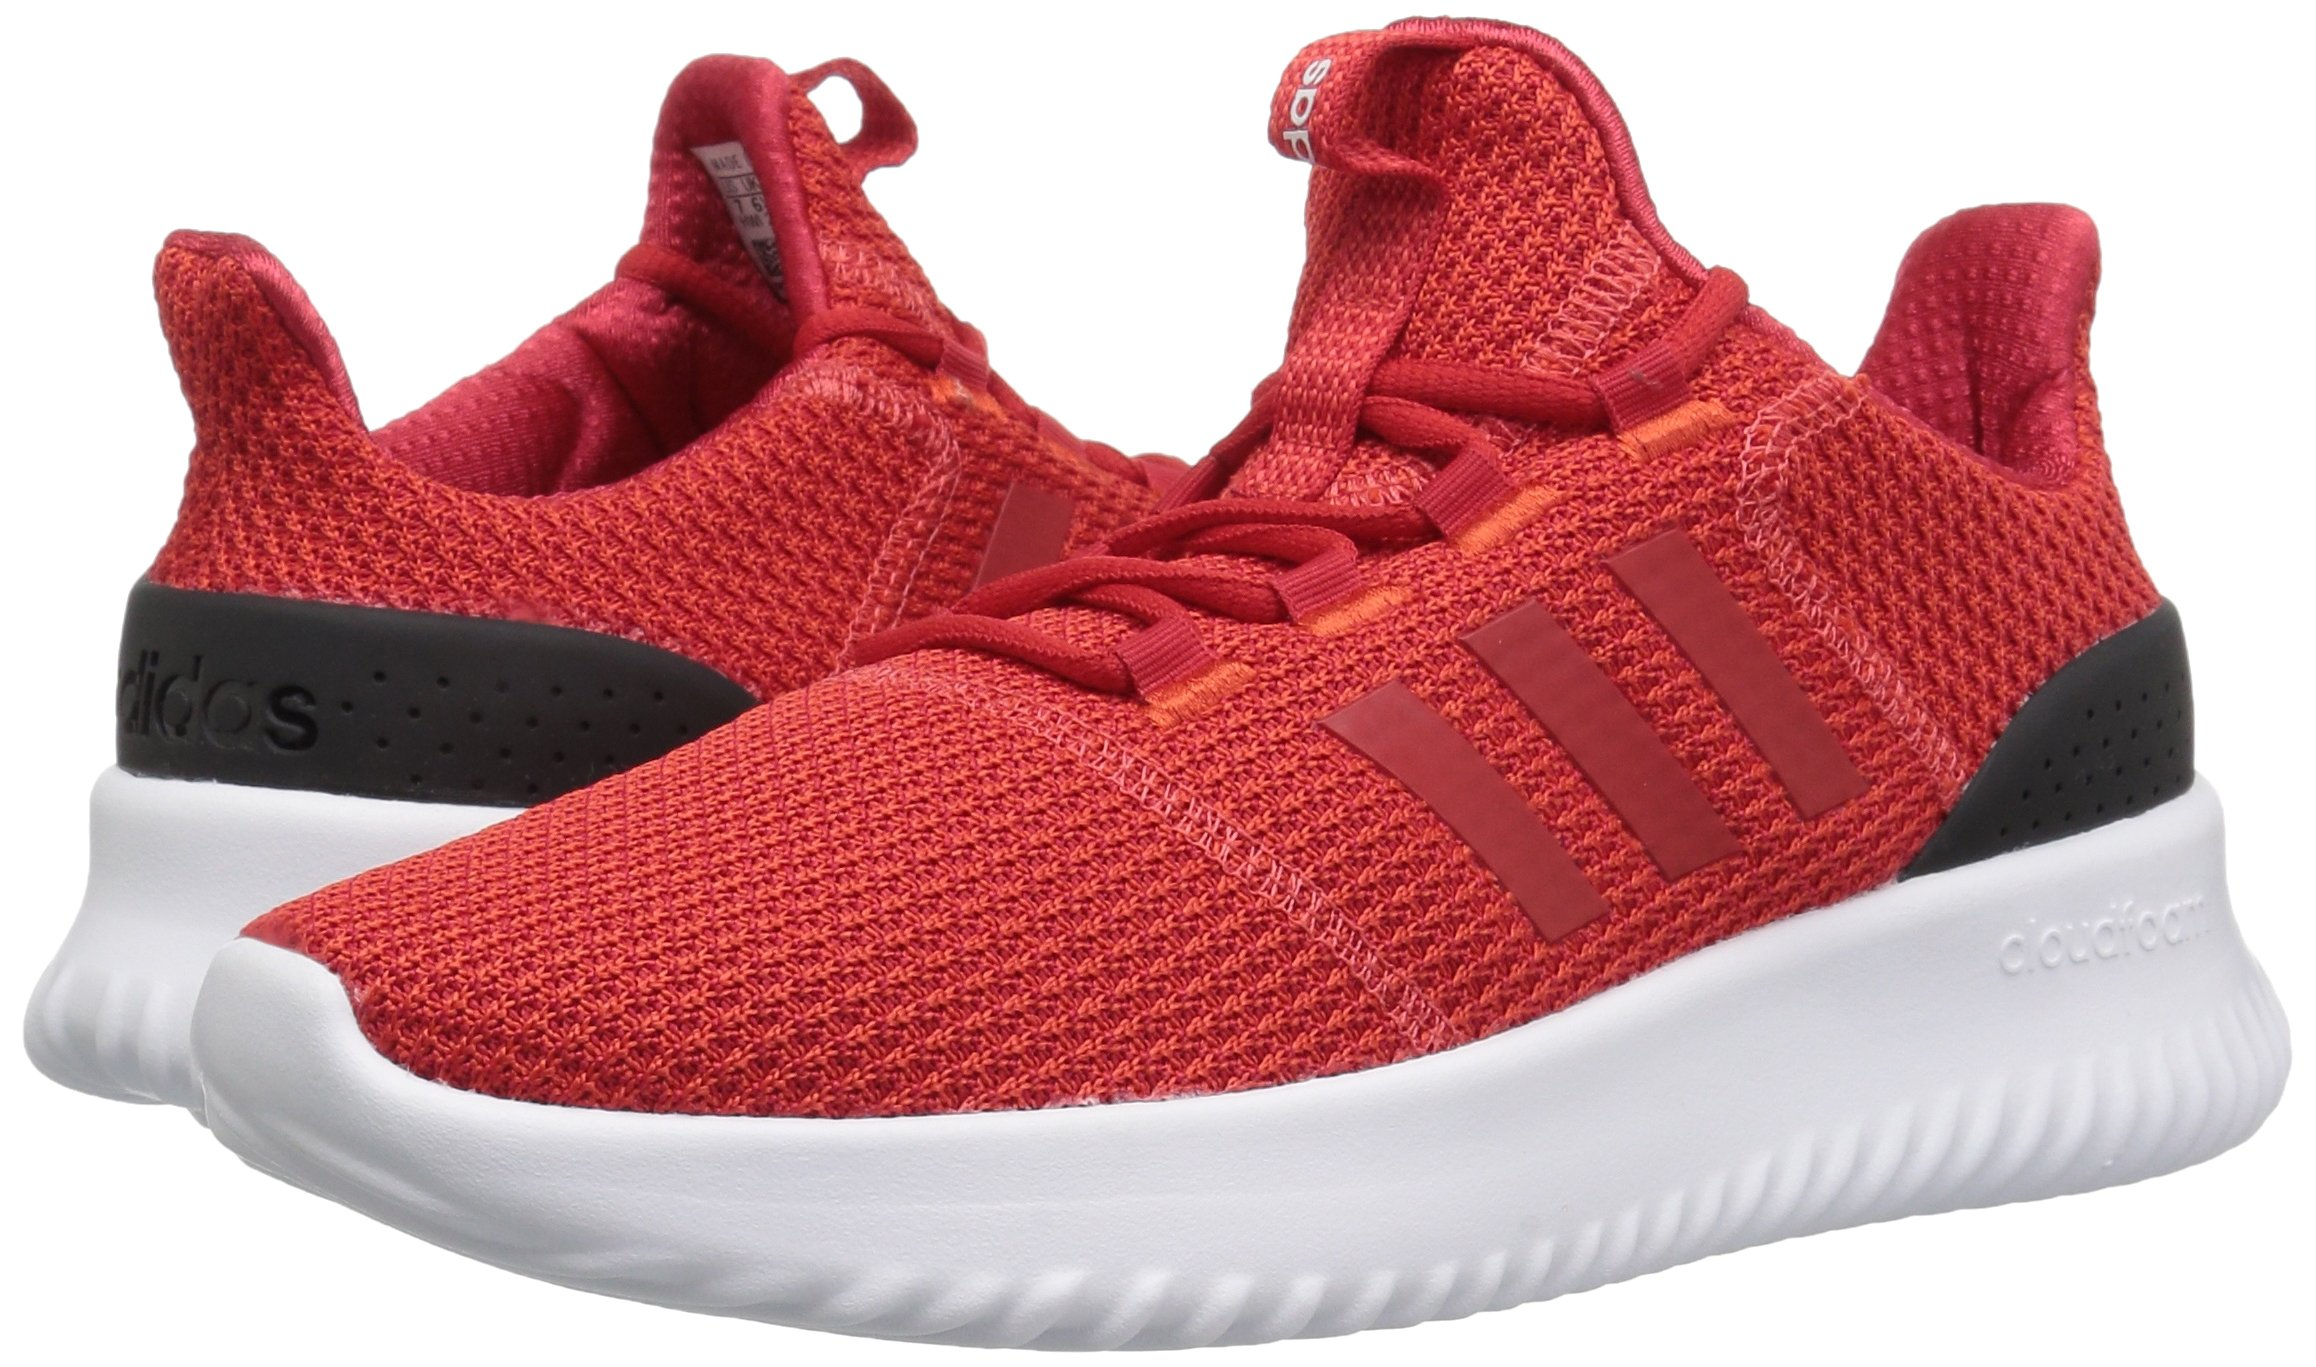 adidas Kids' Cloudfoam Ultimate Running Shoe, Red/Scarlet/Black, 1 M US Little Kid by adidas (Image #5)